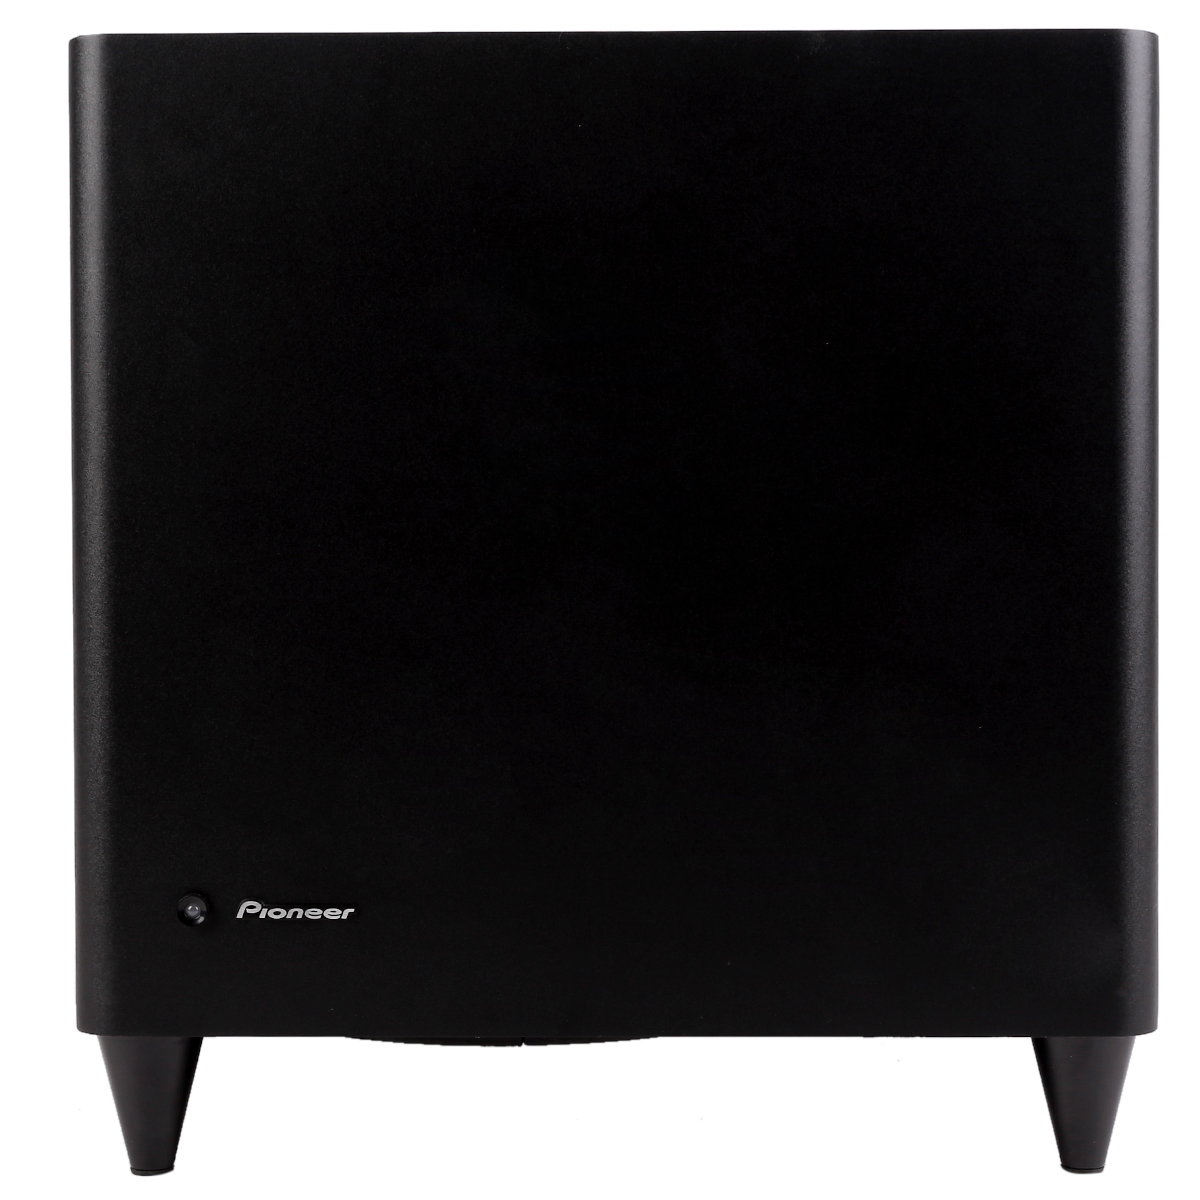 PIONEER SUBWOOFER S-31W/TLPXE